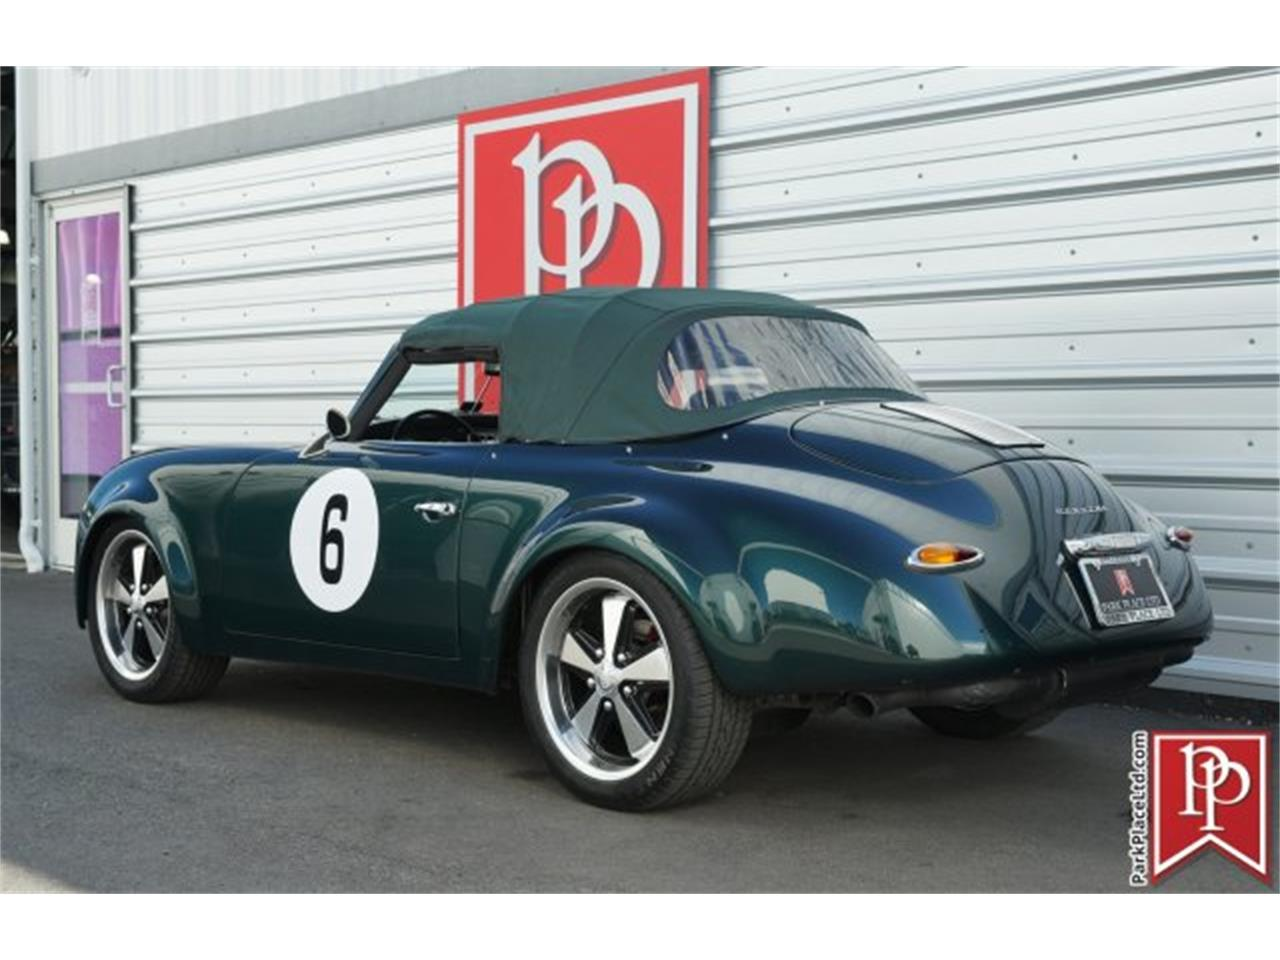 Large Picture of '06 SAS 1957 Speedster Cabriolet located in Washington - $39,950.00 - L46S